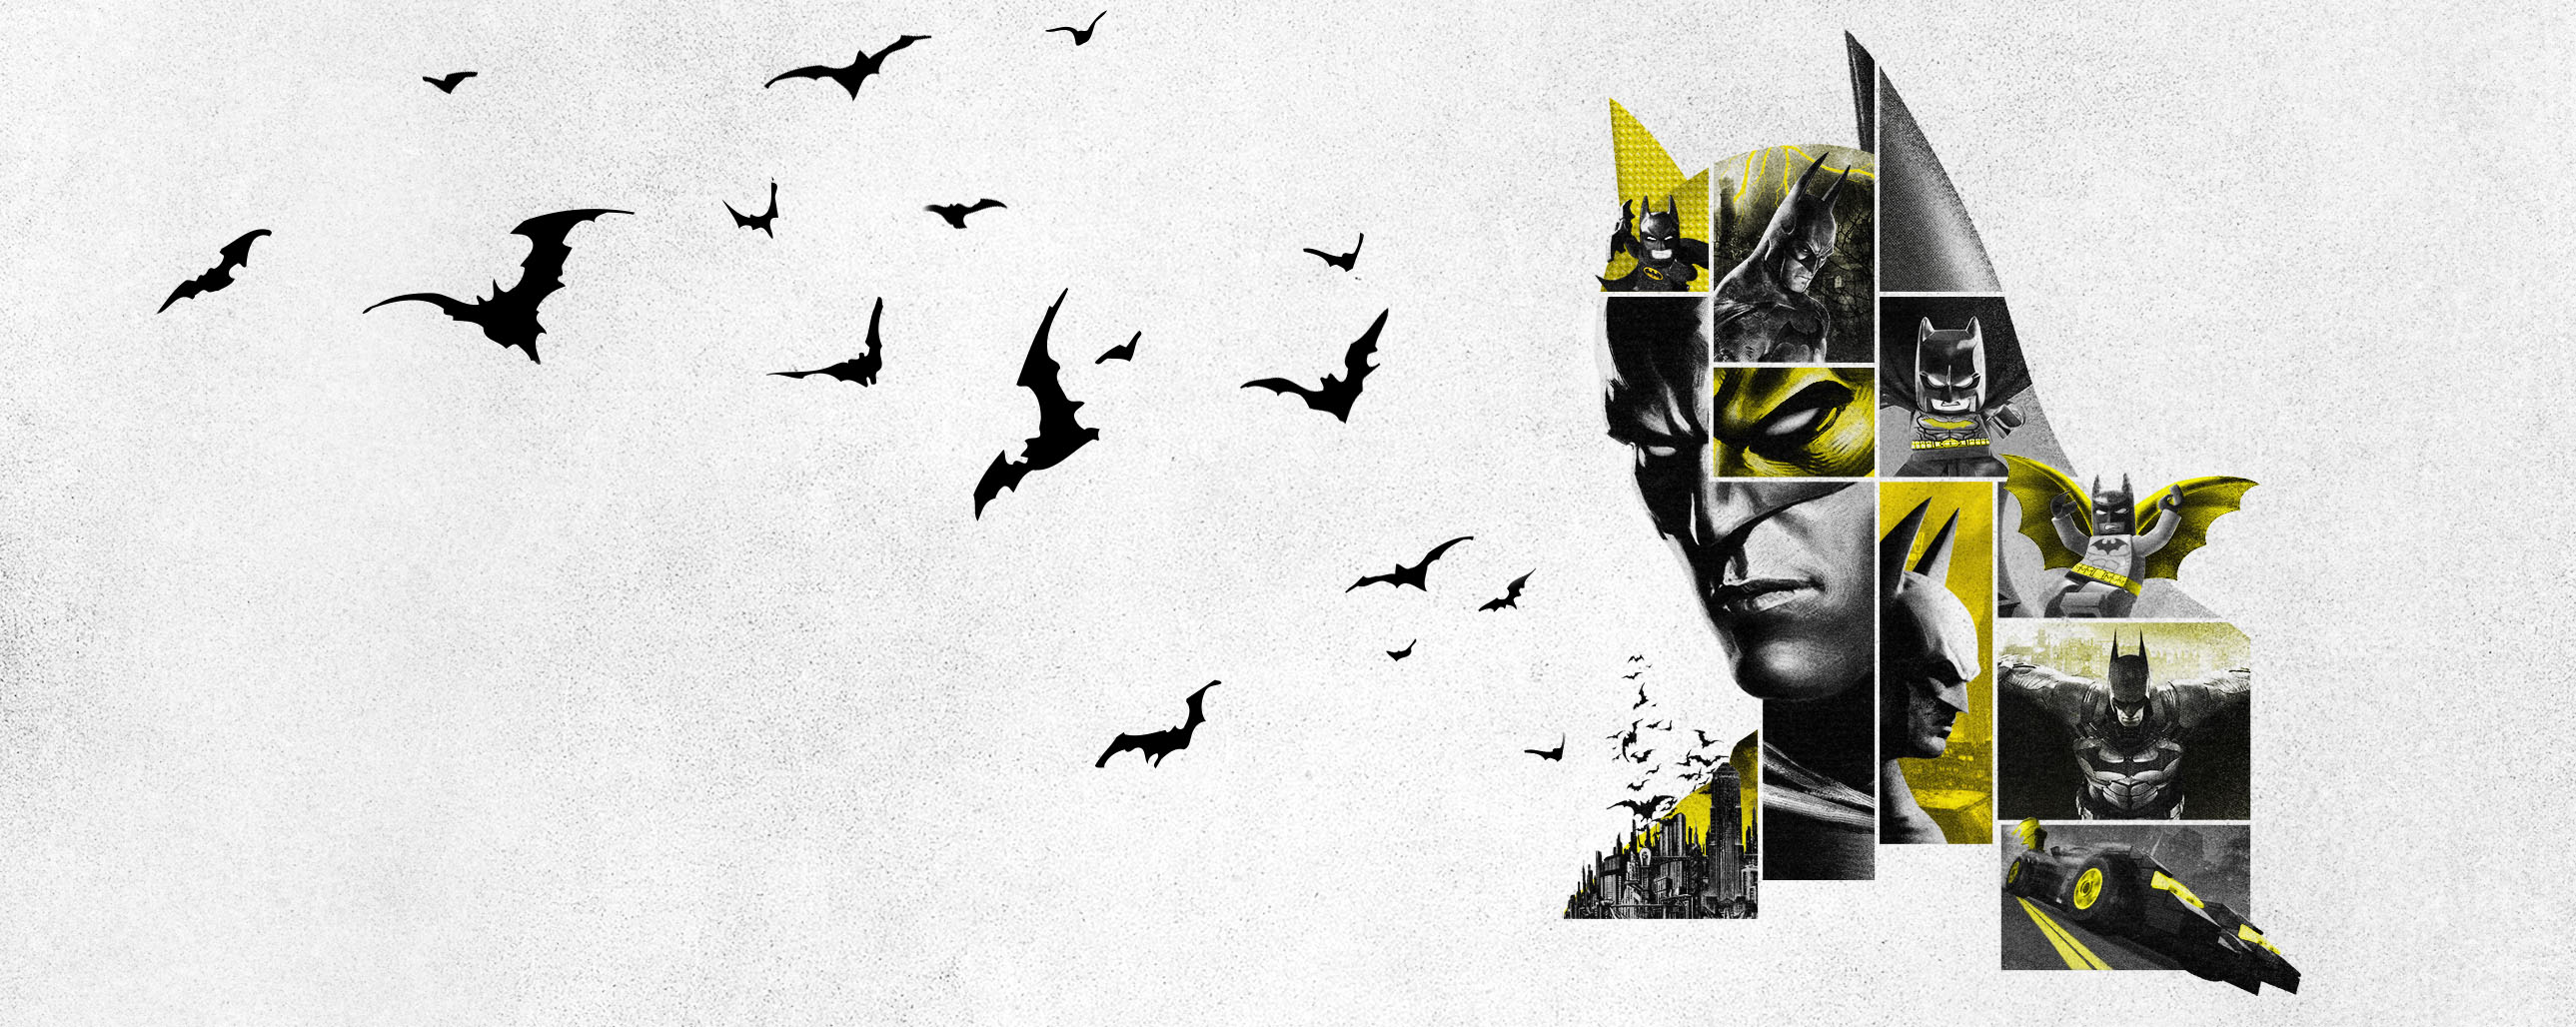 A mosaic of Batman on a white background with flying bats